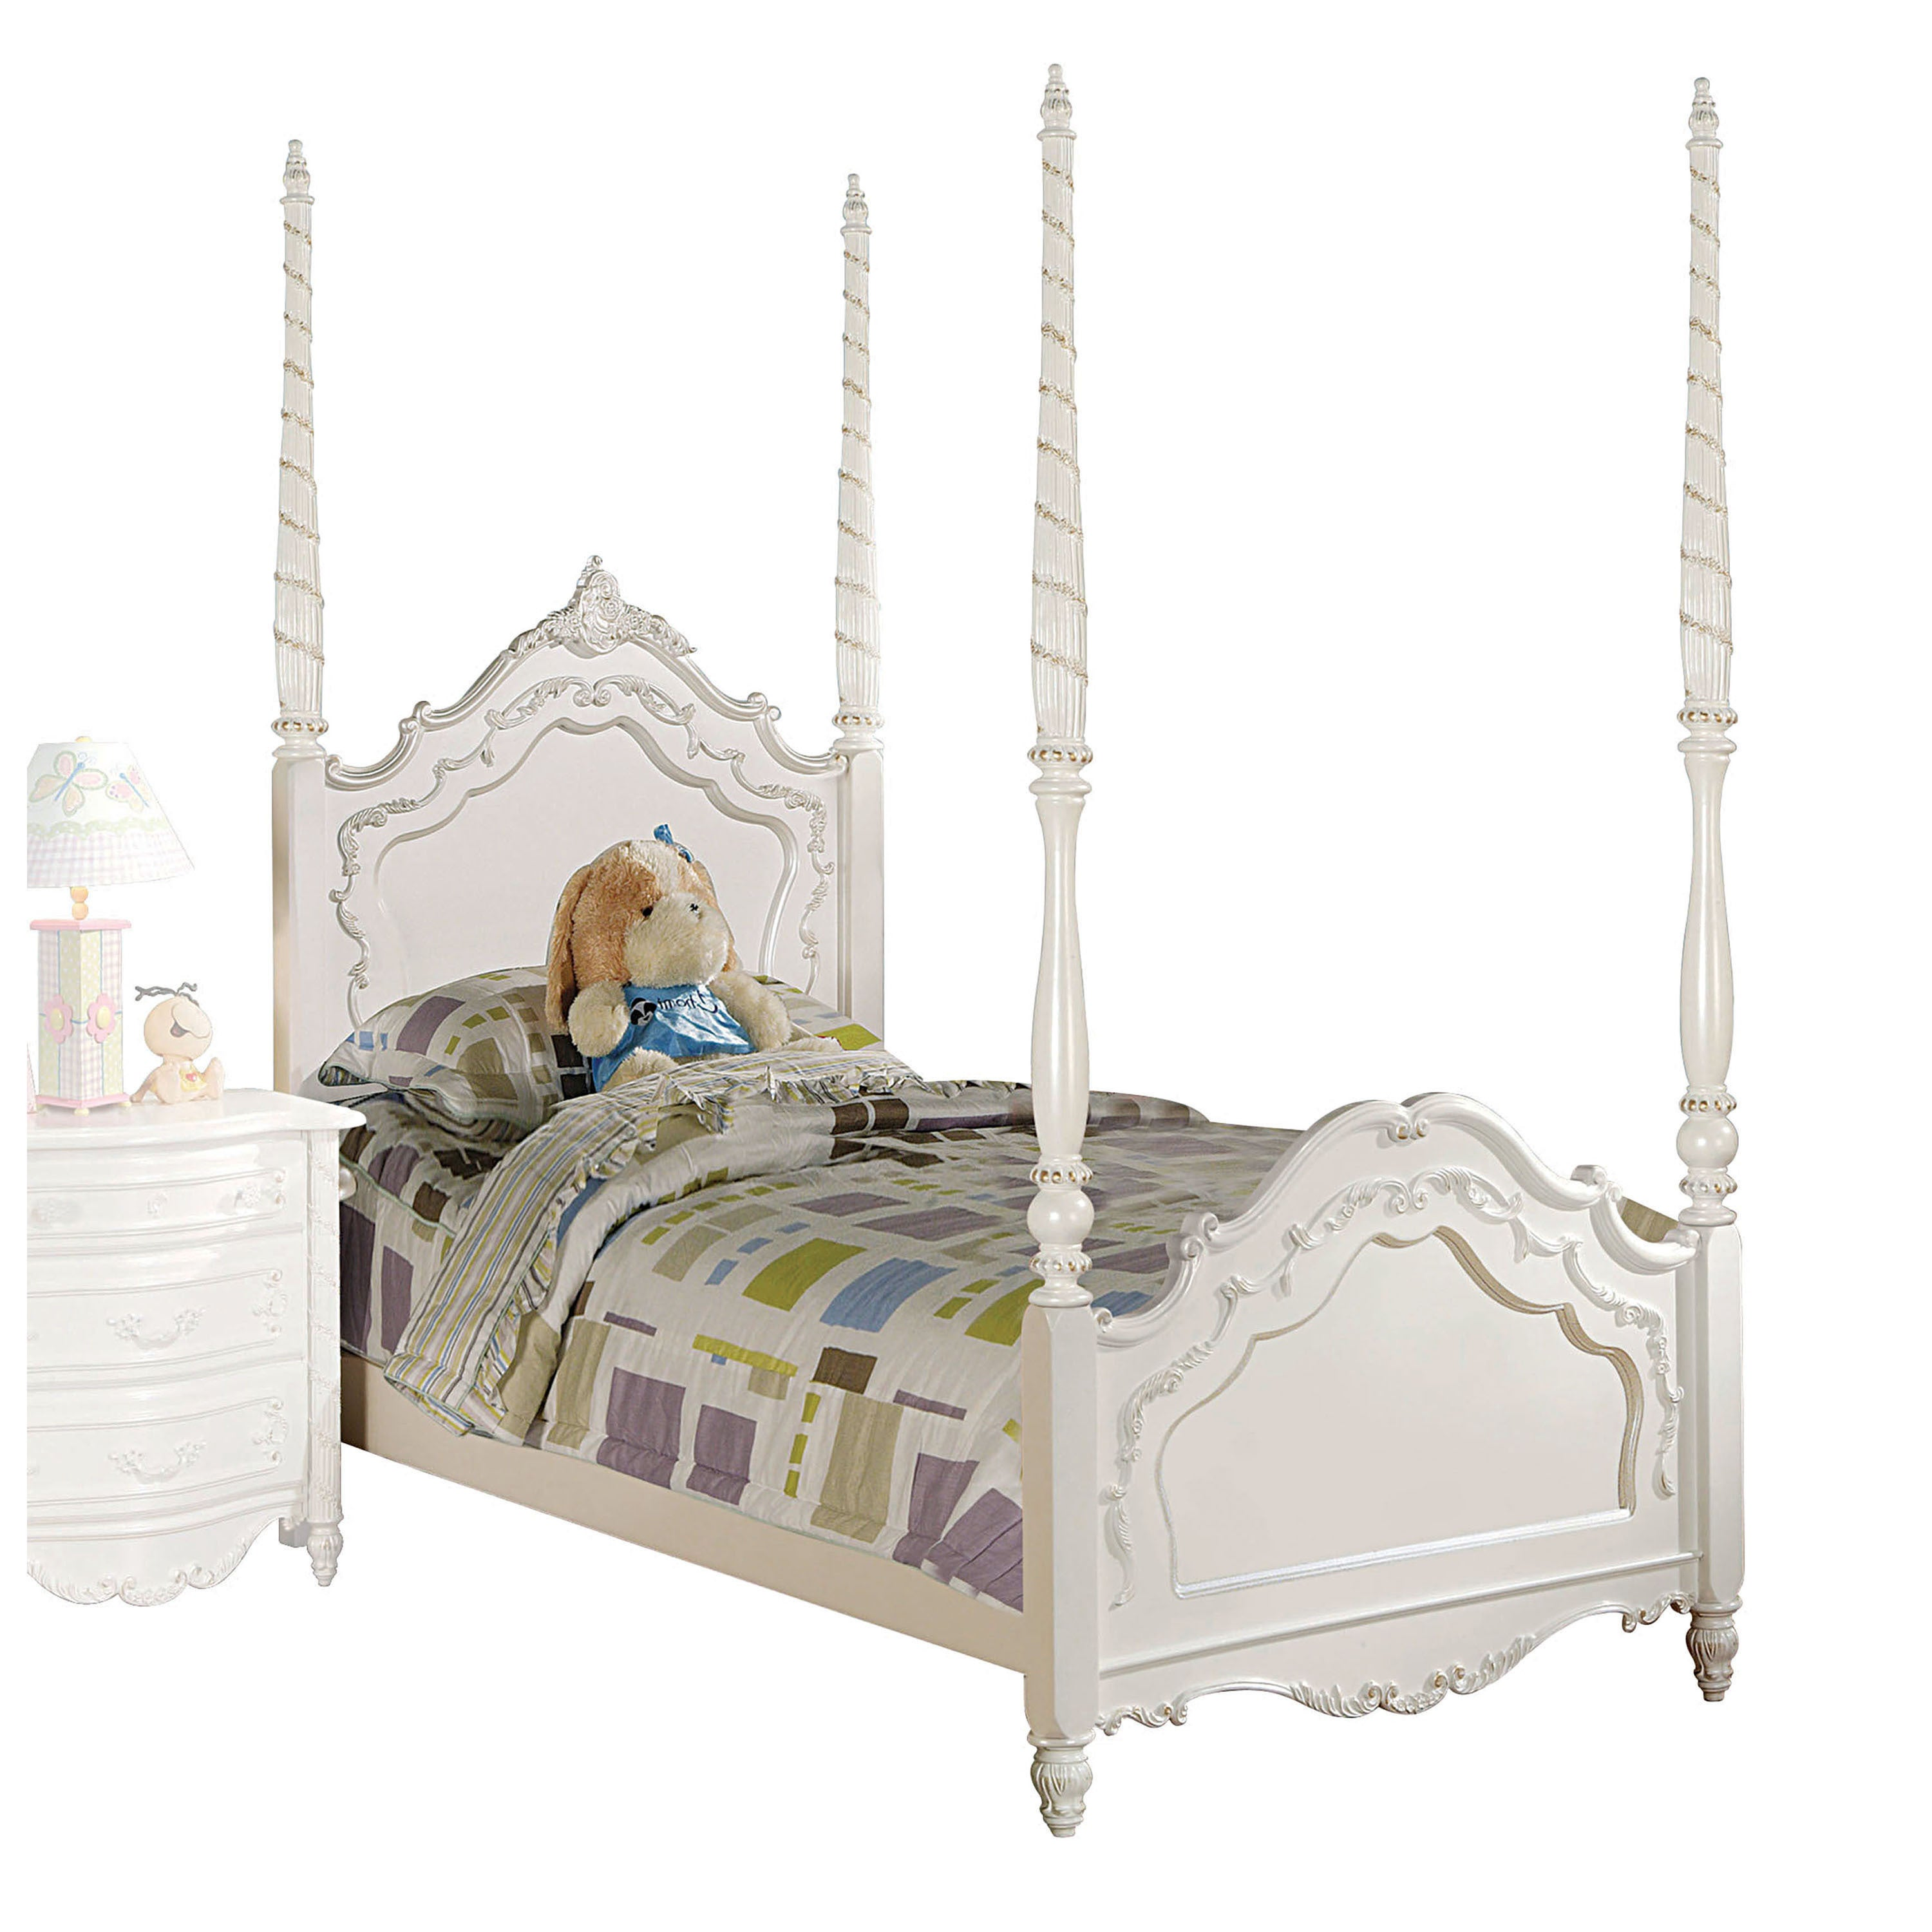 ACME Furniture Pearl Poster Bed, Pearl White and Gold Bru...